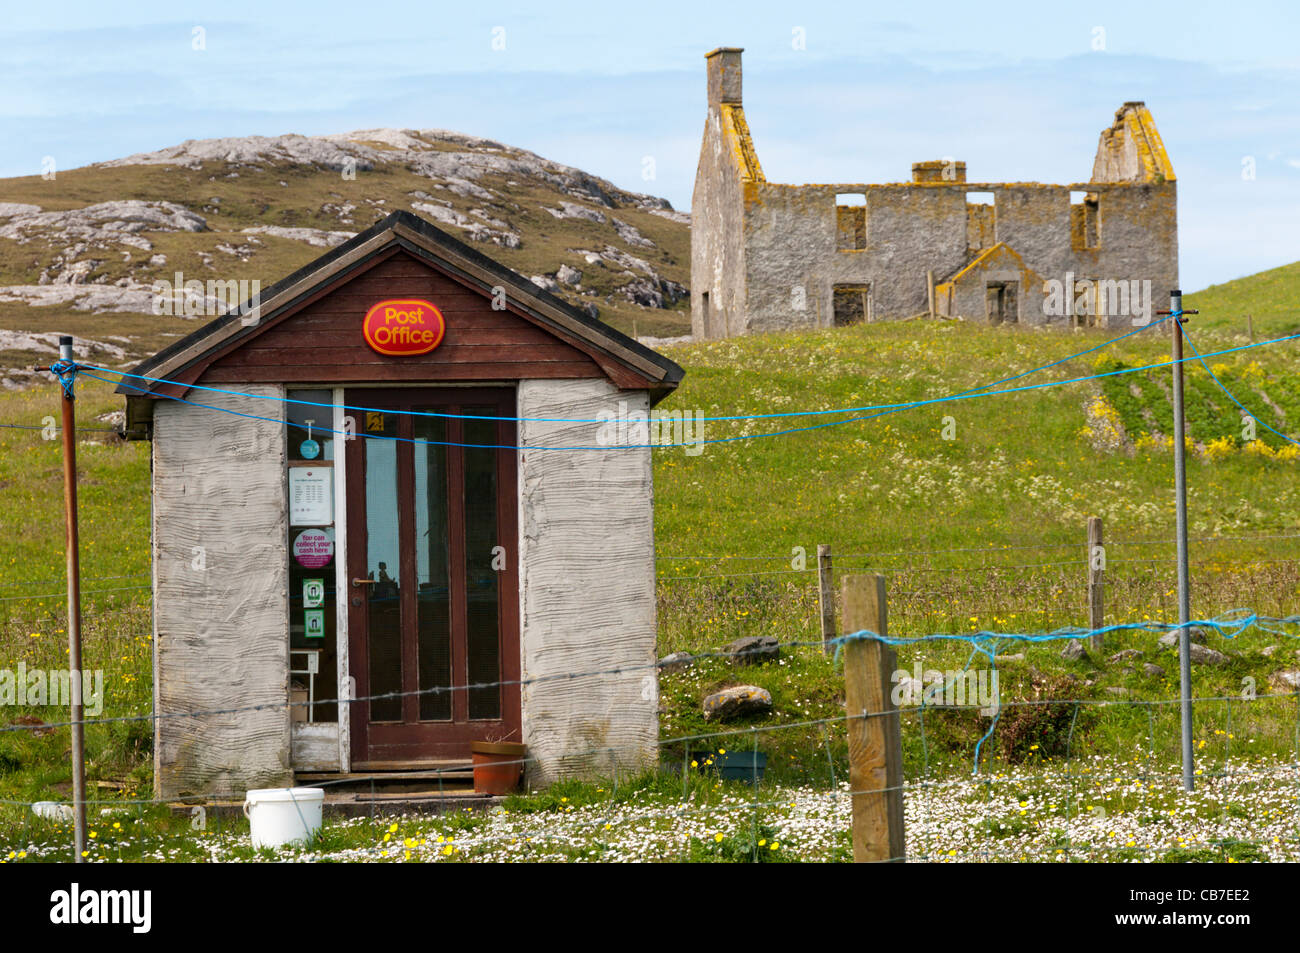 Small Post Office on the island of Vatersay in the Outer Hebrides. - Stock Image